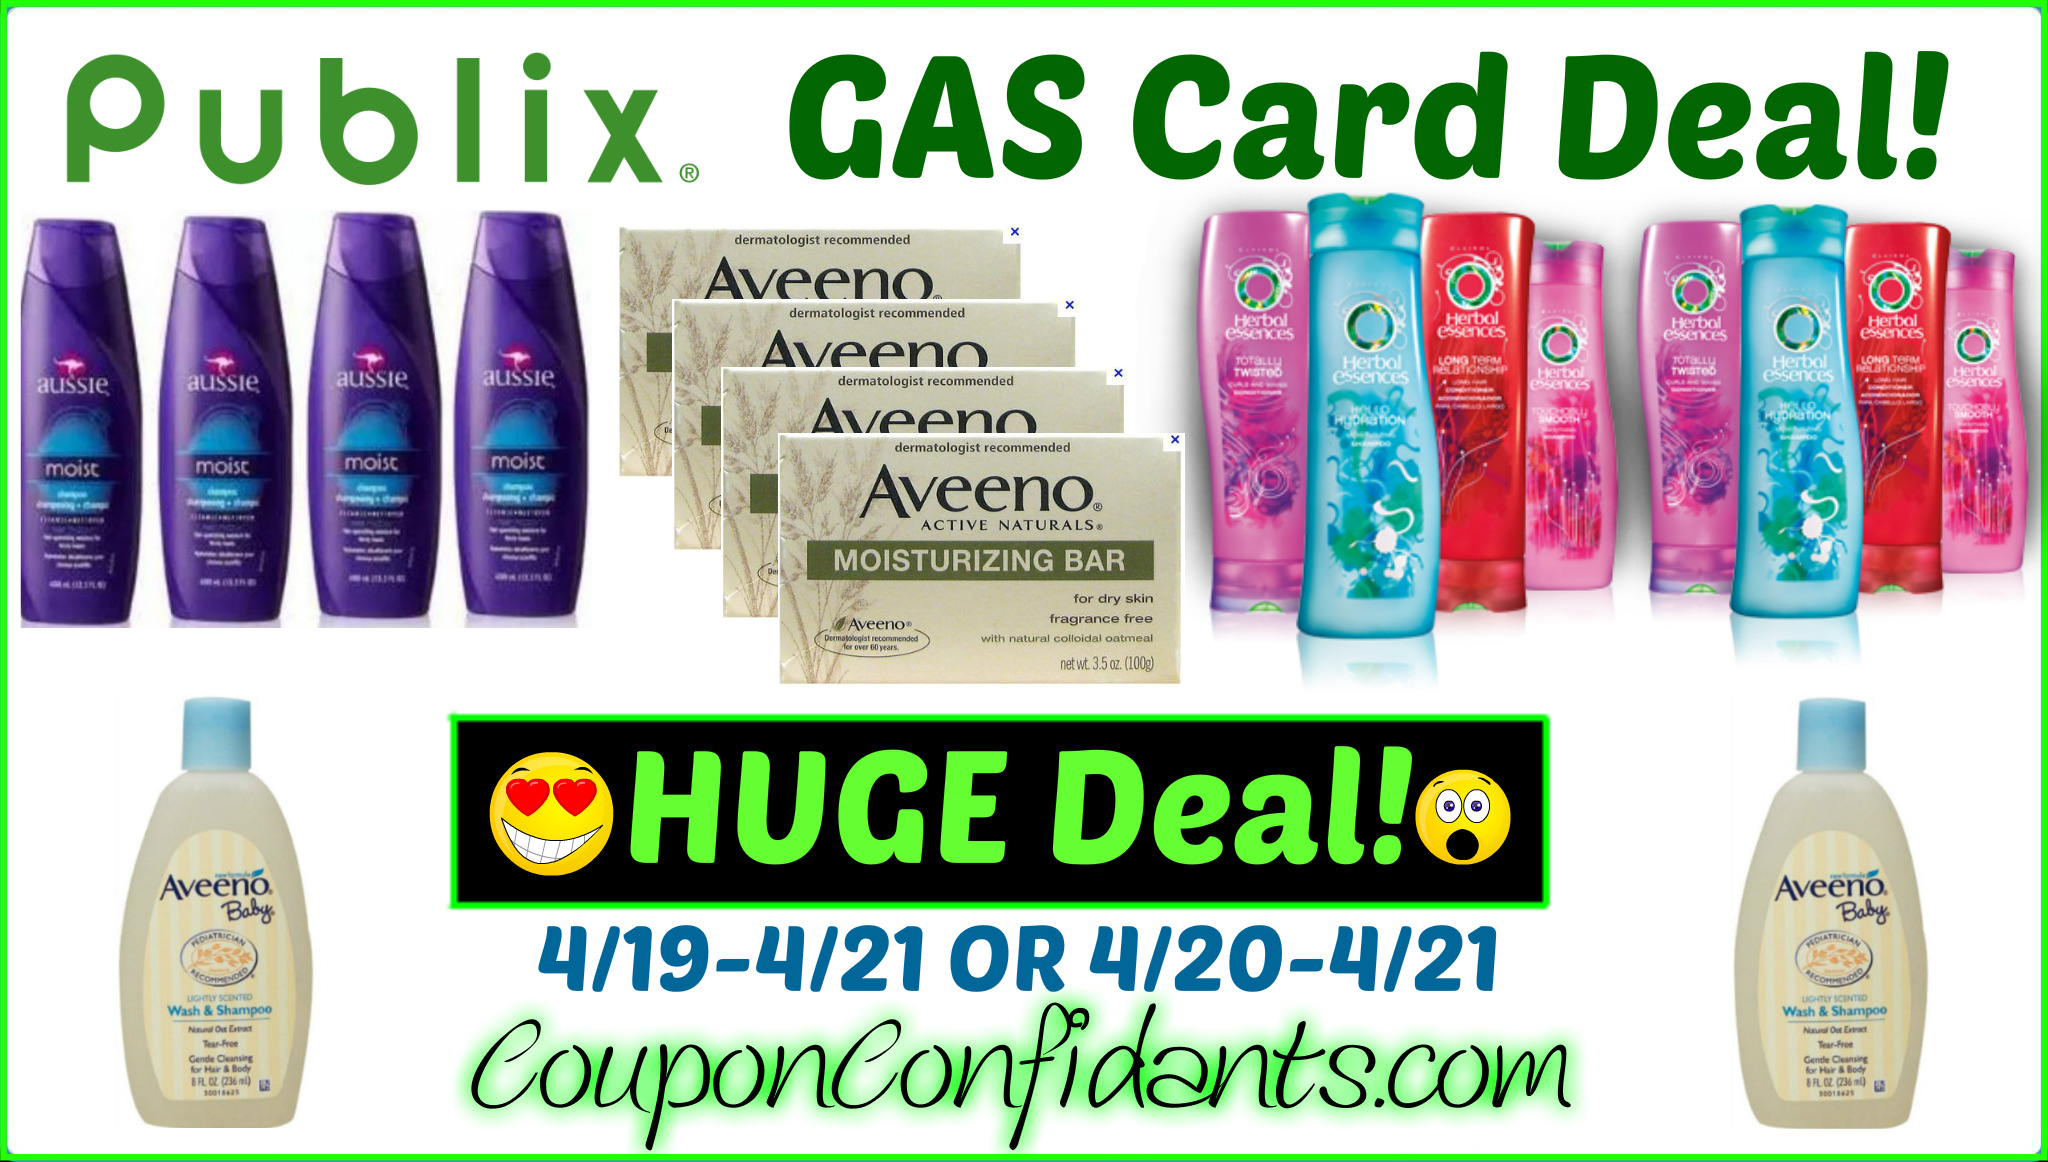 HUGE Gas Card Deal!!!!! Only $48.22 for all this AND $50 in Gas at Publix!